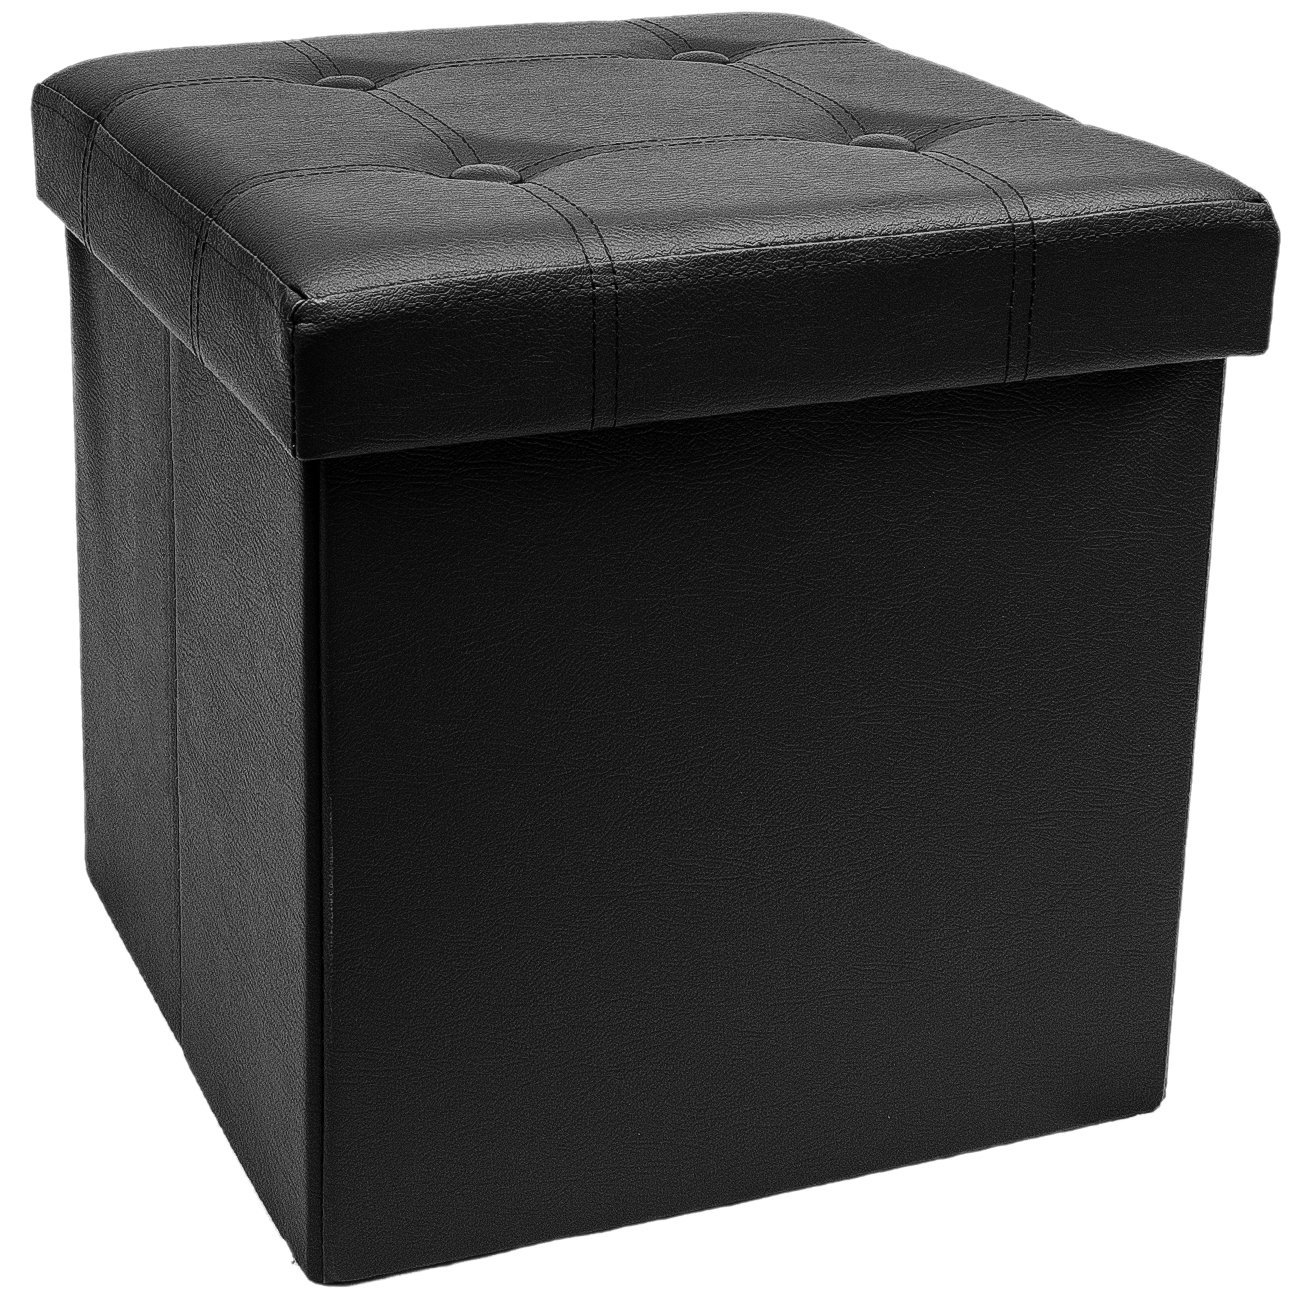 Sorbus Faux Leather Folding Ottoman, Black GGI International STRG-OTM-BLK